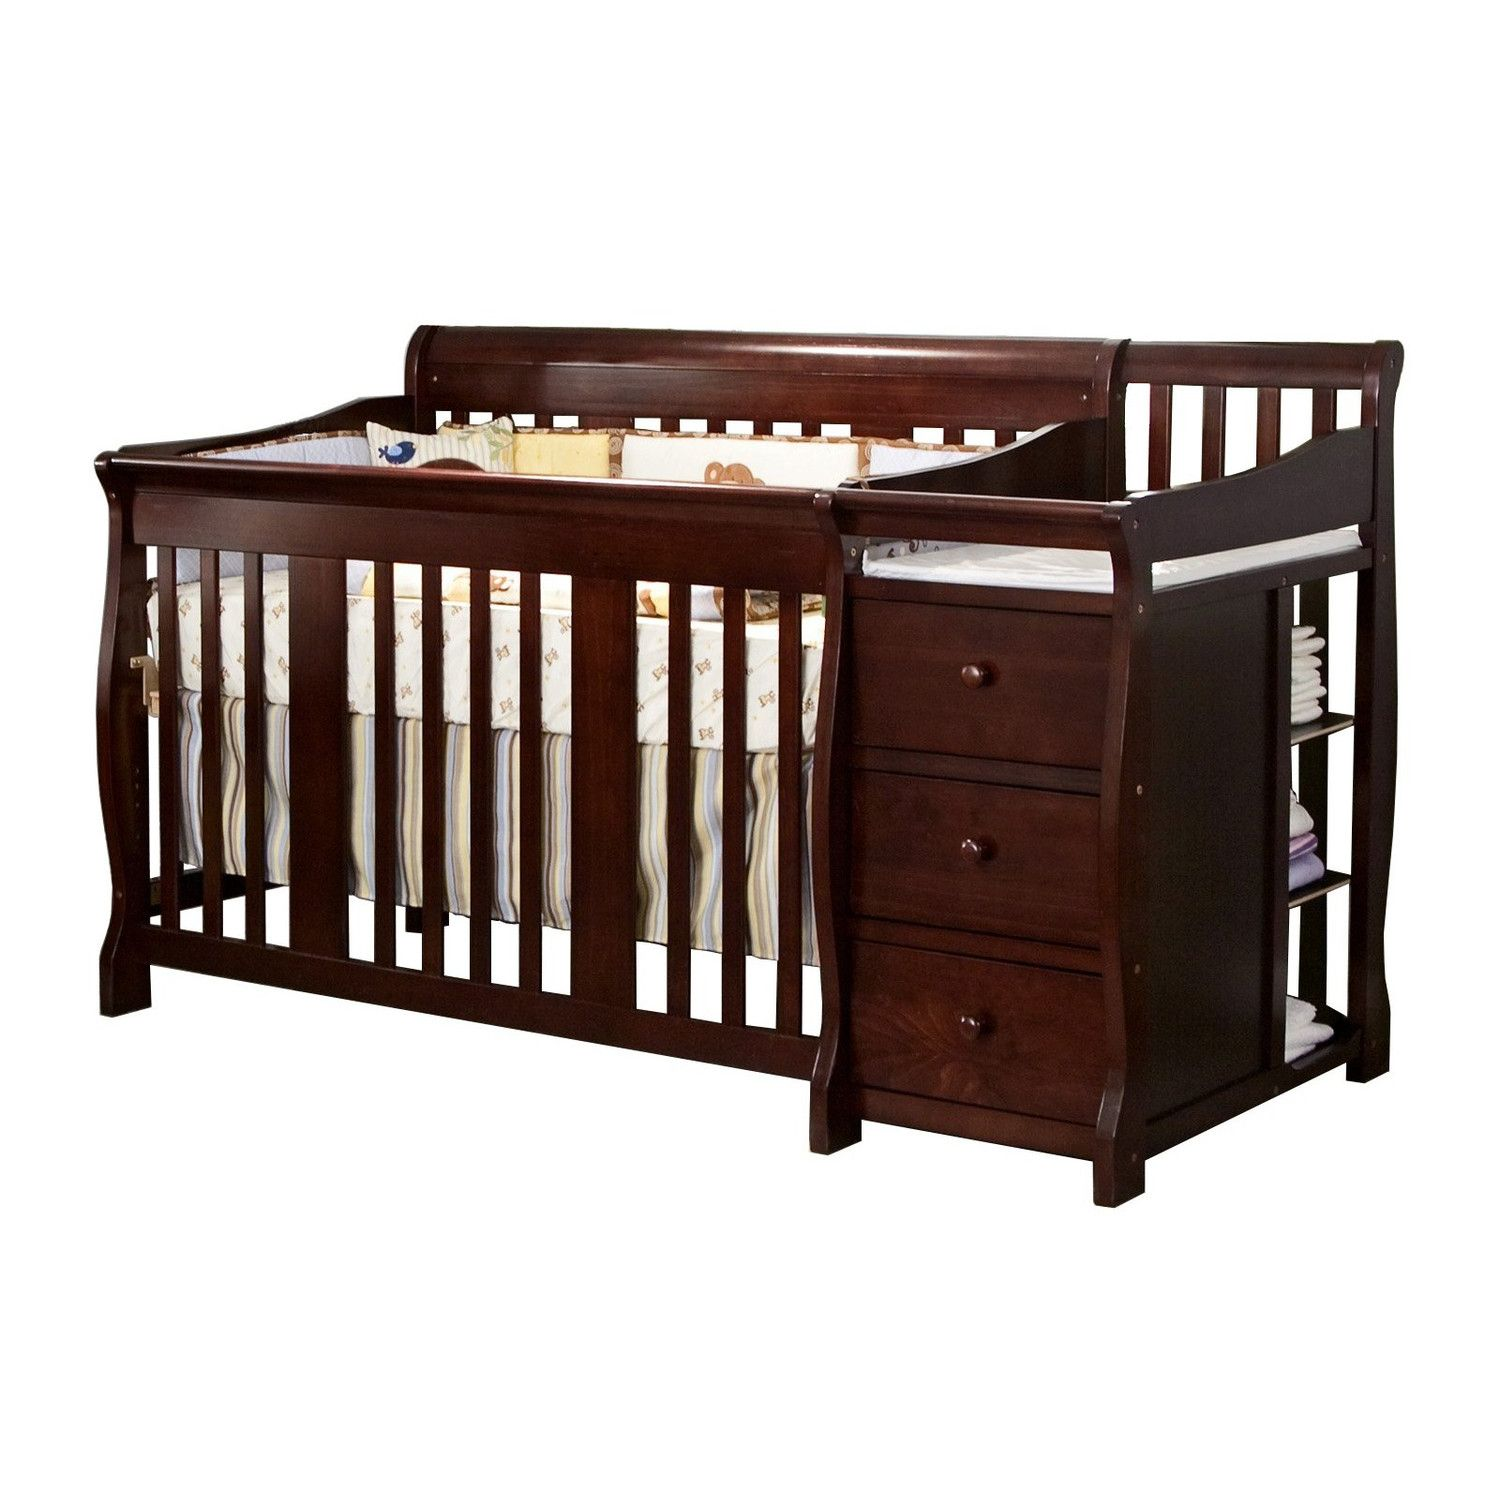 Crib Changing Table Dresser Combo Cribs Baby Toddler Bed